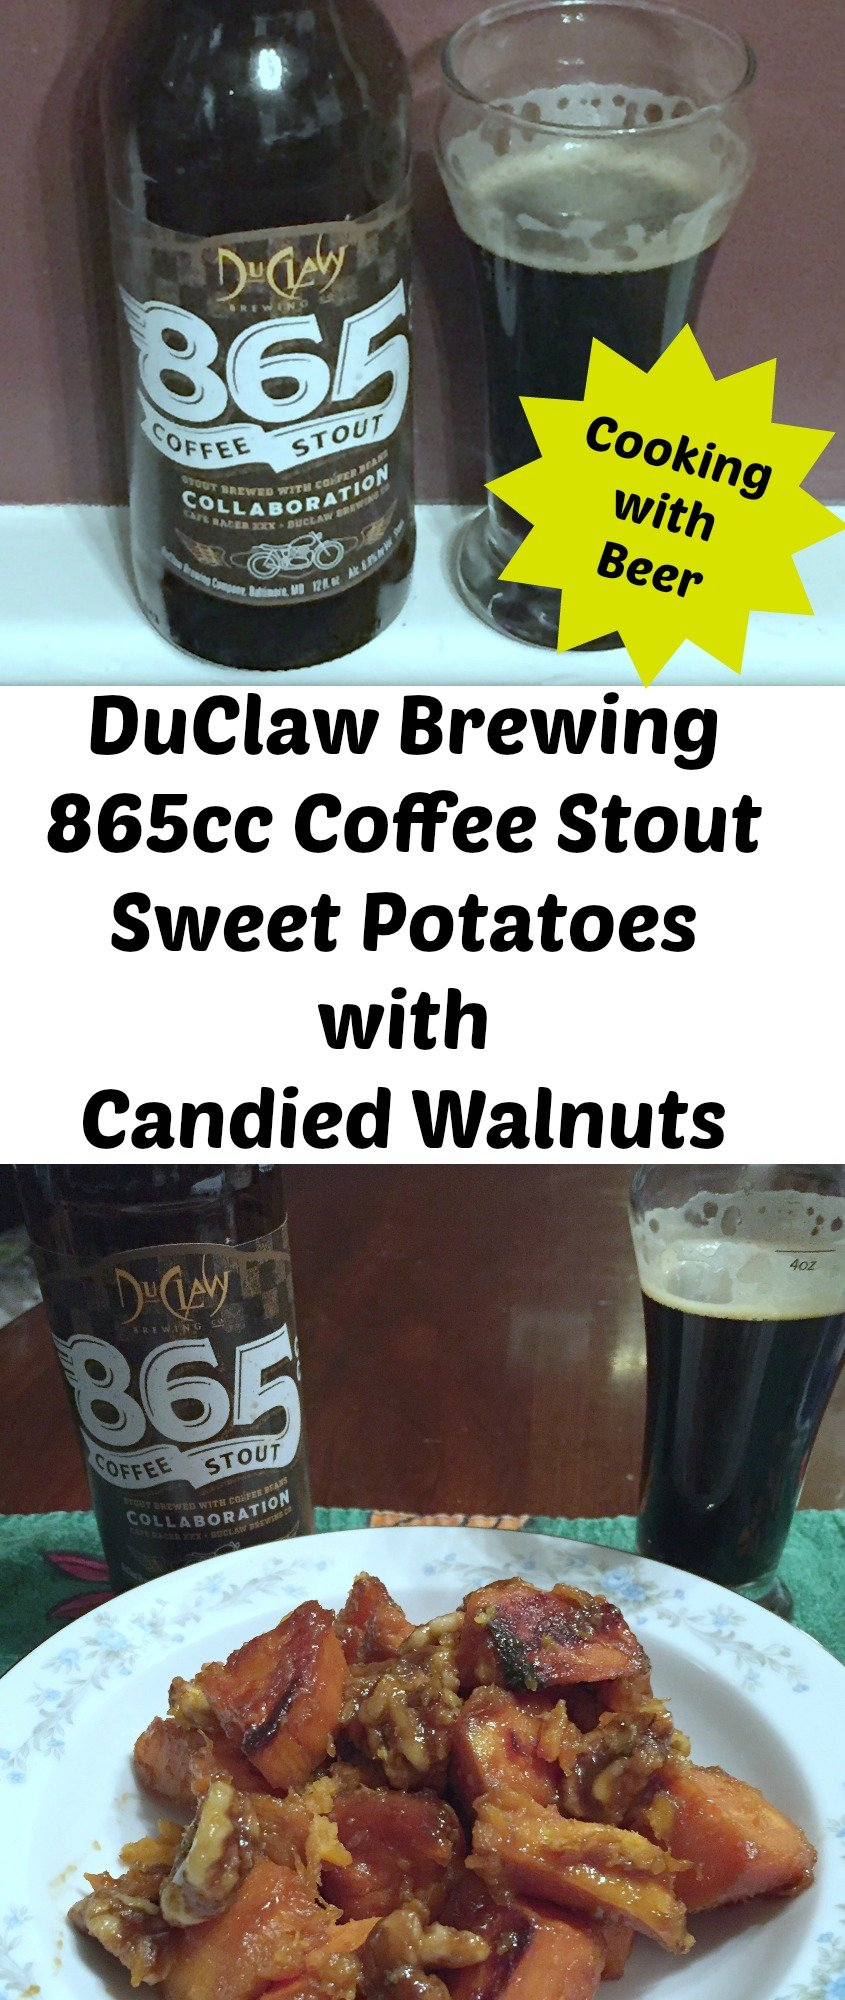 duclaw-865cc-coffee-stout-pin